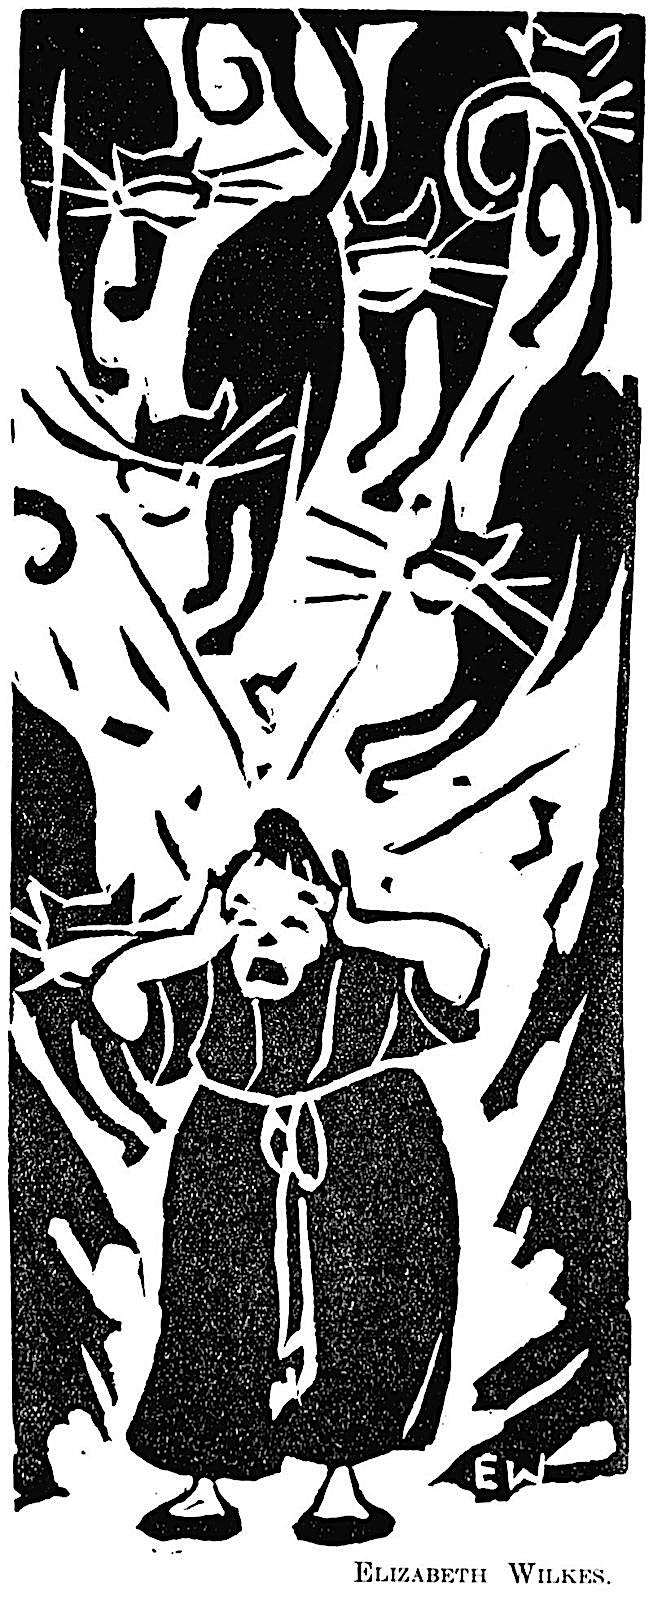 Elizabeth Wilkes 1933, a woman tormented by howling cats